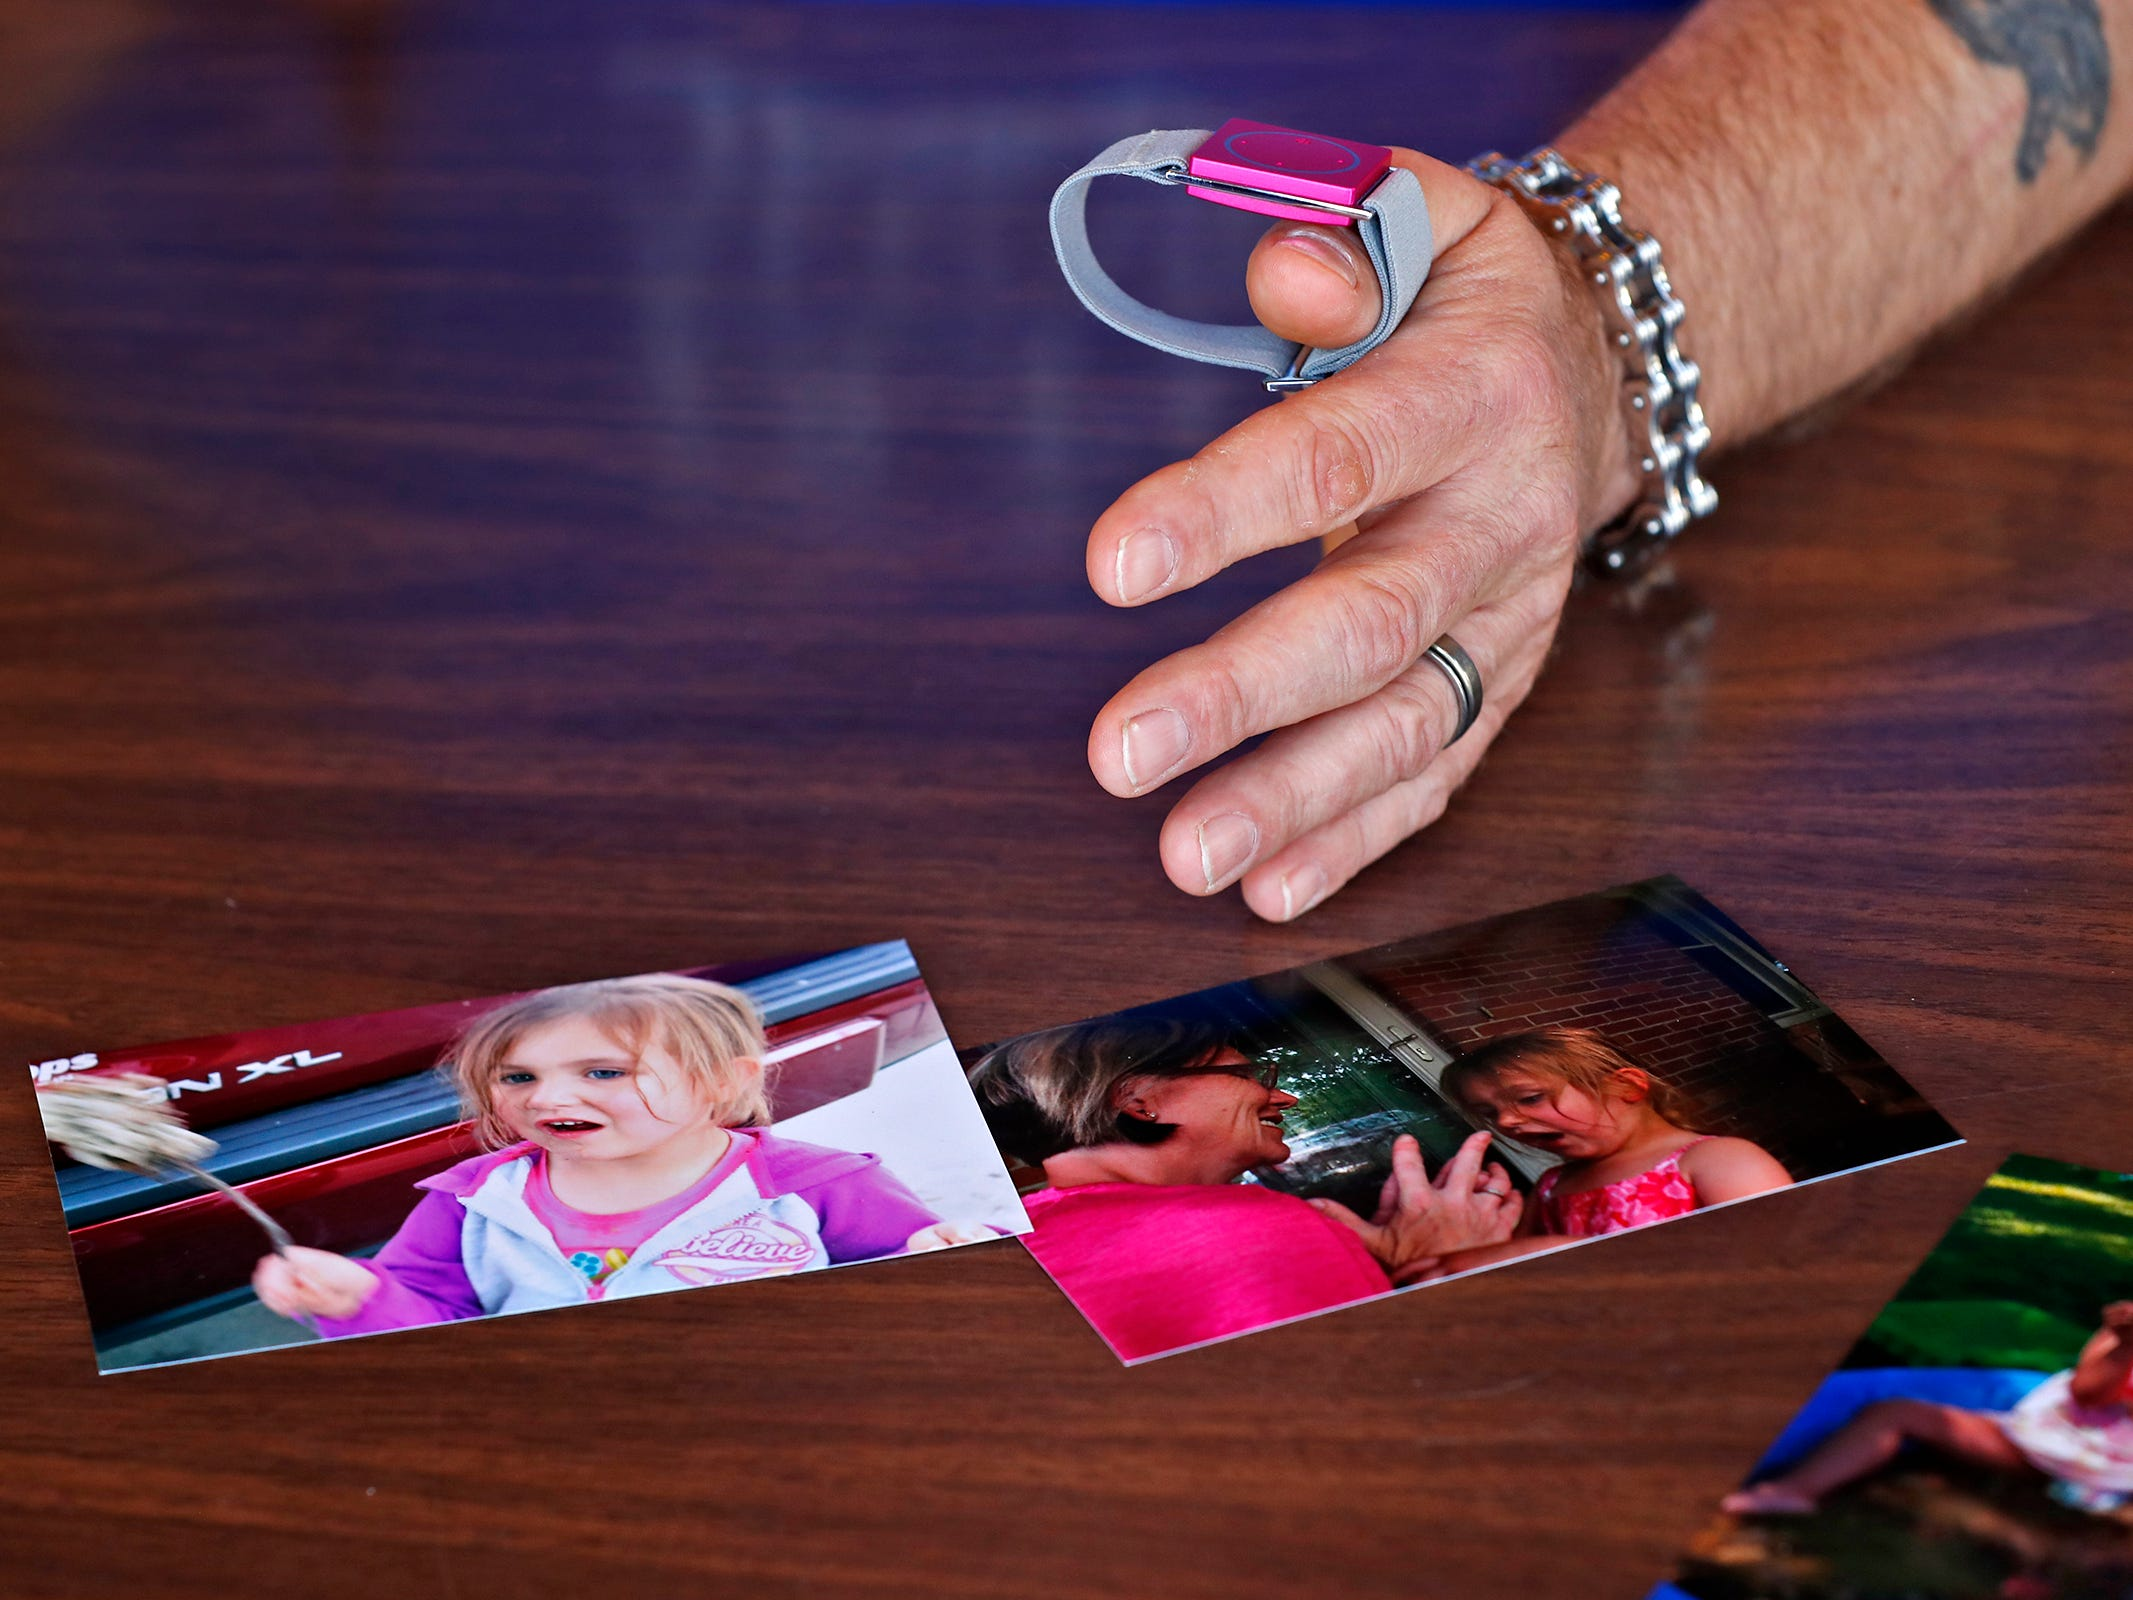 Dave Curtis holds his daughter Charly's seizure monitor, Thursday, Feb. 21, 2019. Photos of her lay in front of him.  Charly was born with a genetic condition that eventually led her to develop grand mal seizures. After trying many medications that would work at first then become ineffective, they eventually tried treating her with THC, which has been known to help children with seizures.  But in Indiana, that meant going through a lot of bureaucratic red tape.  When their THC was about to run out, Charly's father drove to Colorado to replenish their supply.  In his absence, Charly had a seizure and died.  The New Castle family wants to share their story to promote the legalization of medical marijuana.